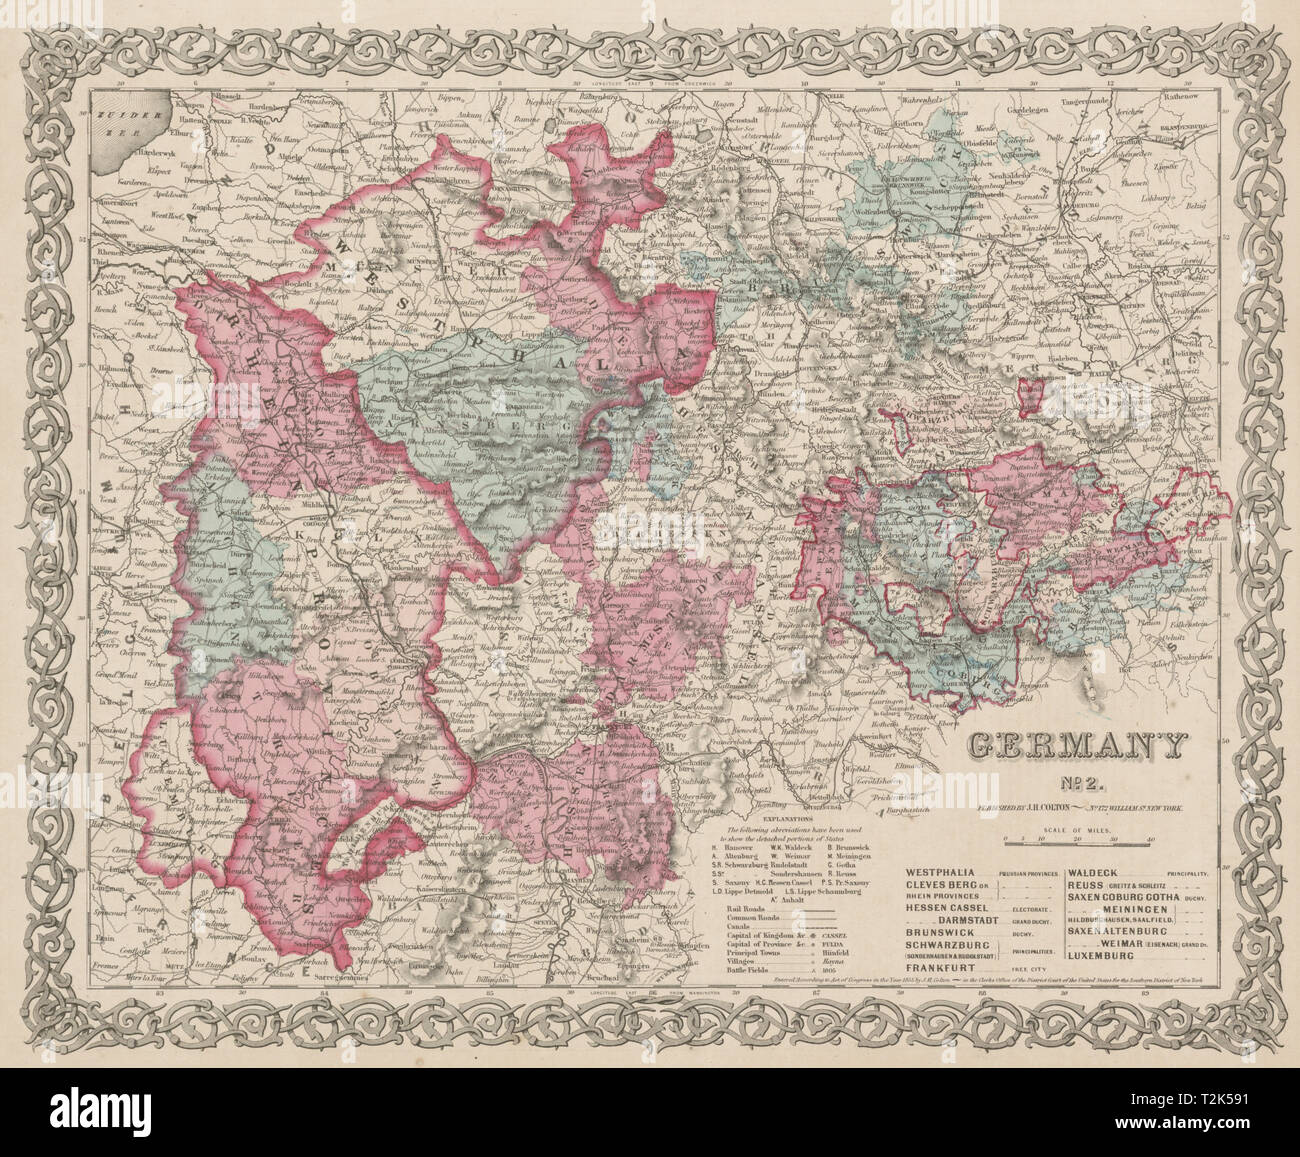 Map Of Central Germany.Central Germany 2 Nordrhein Westfalen Rheinland Pfalz Thuringen